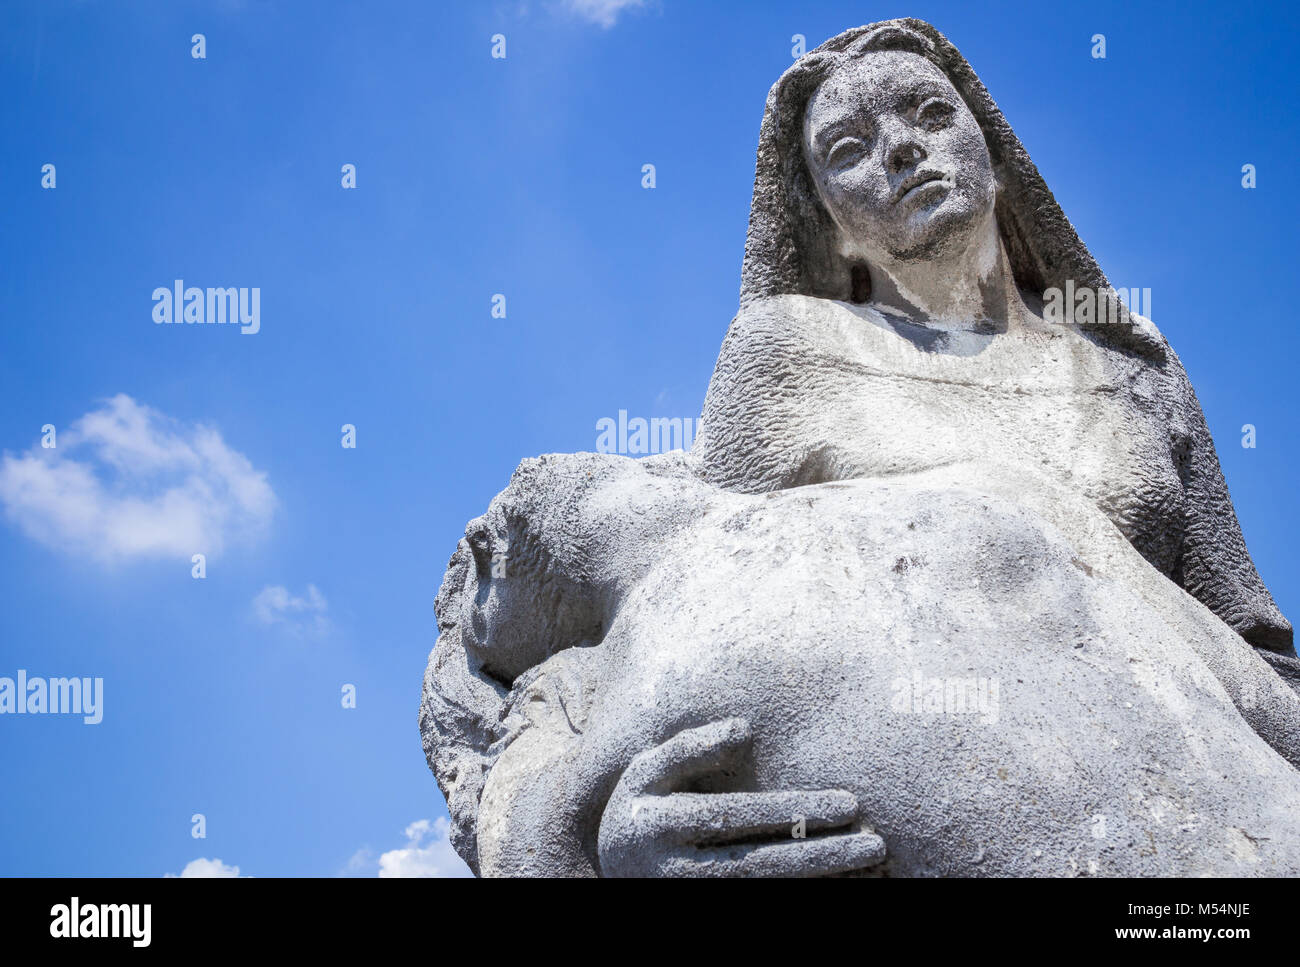 Religious statue representing the Piety - Stock Image